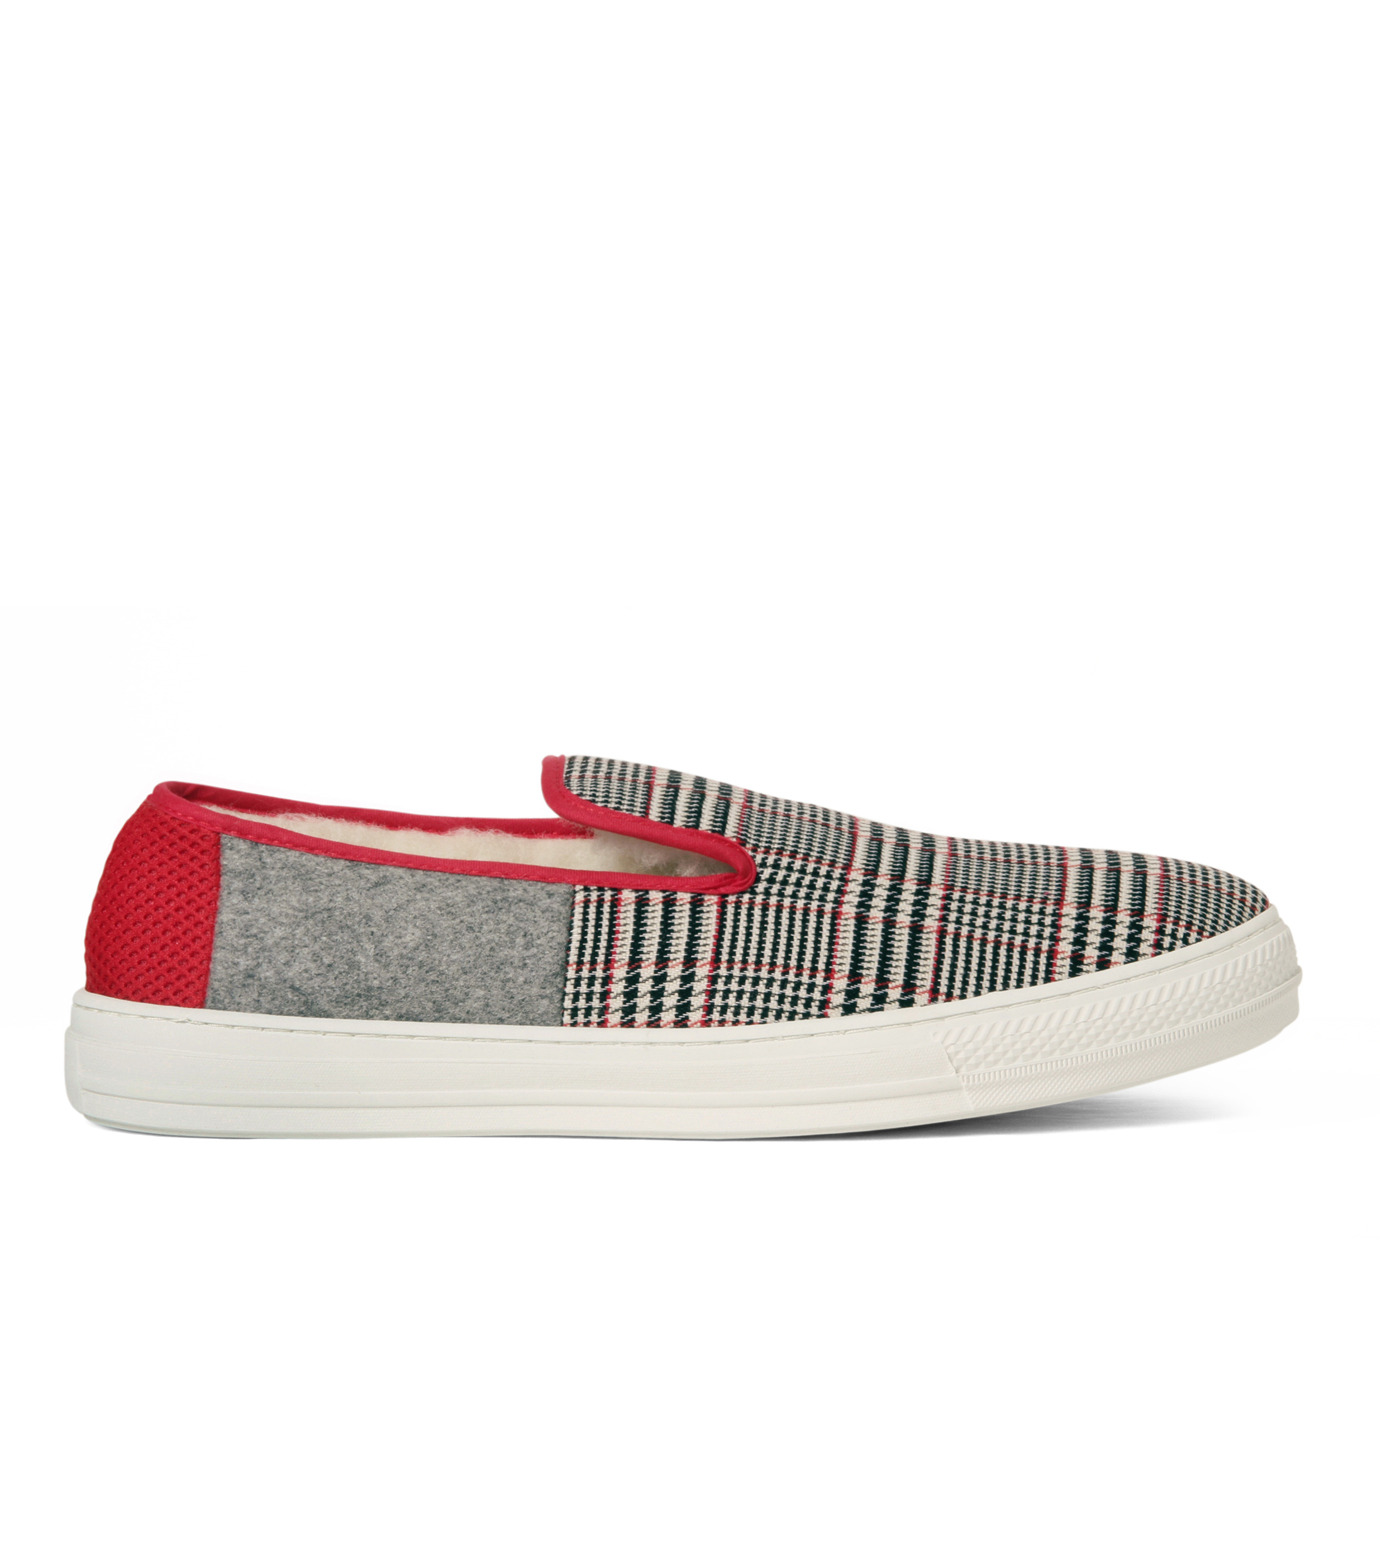 TAISE by SOUSTS(TAISE by SOUSTS)のANATOLE Grey/Red-GRAY(スニーカー/sneaker)-ANATOLE-11 拡大詳細画像1